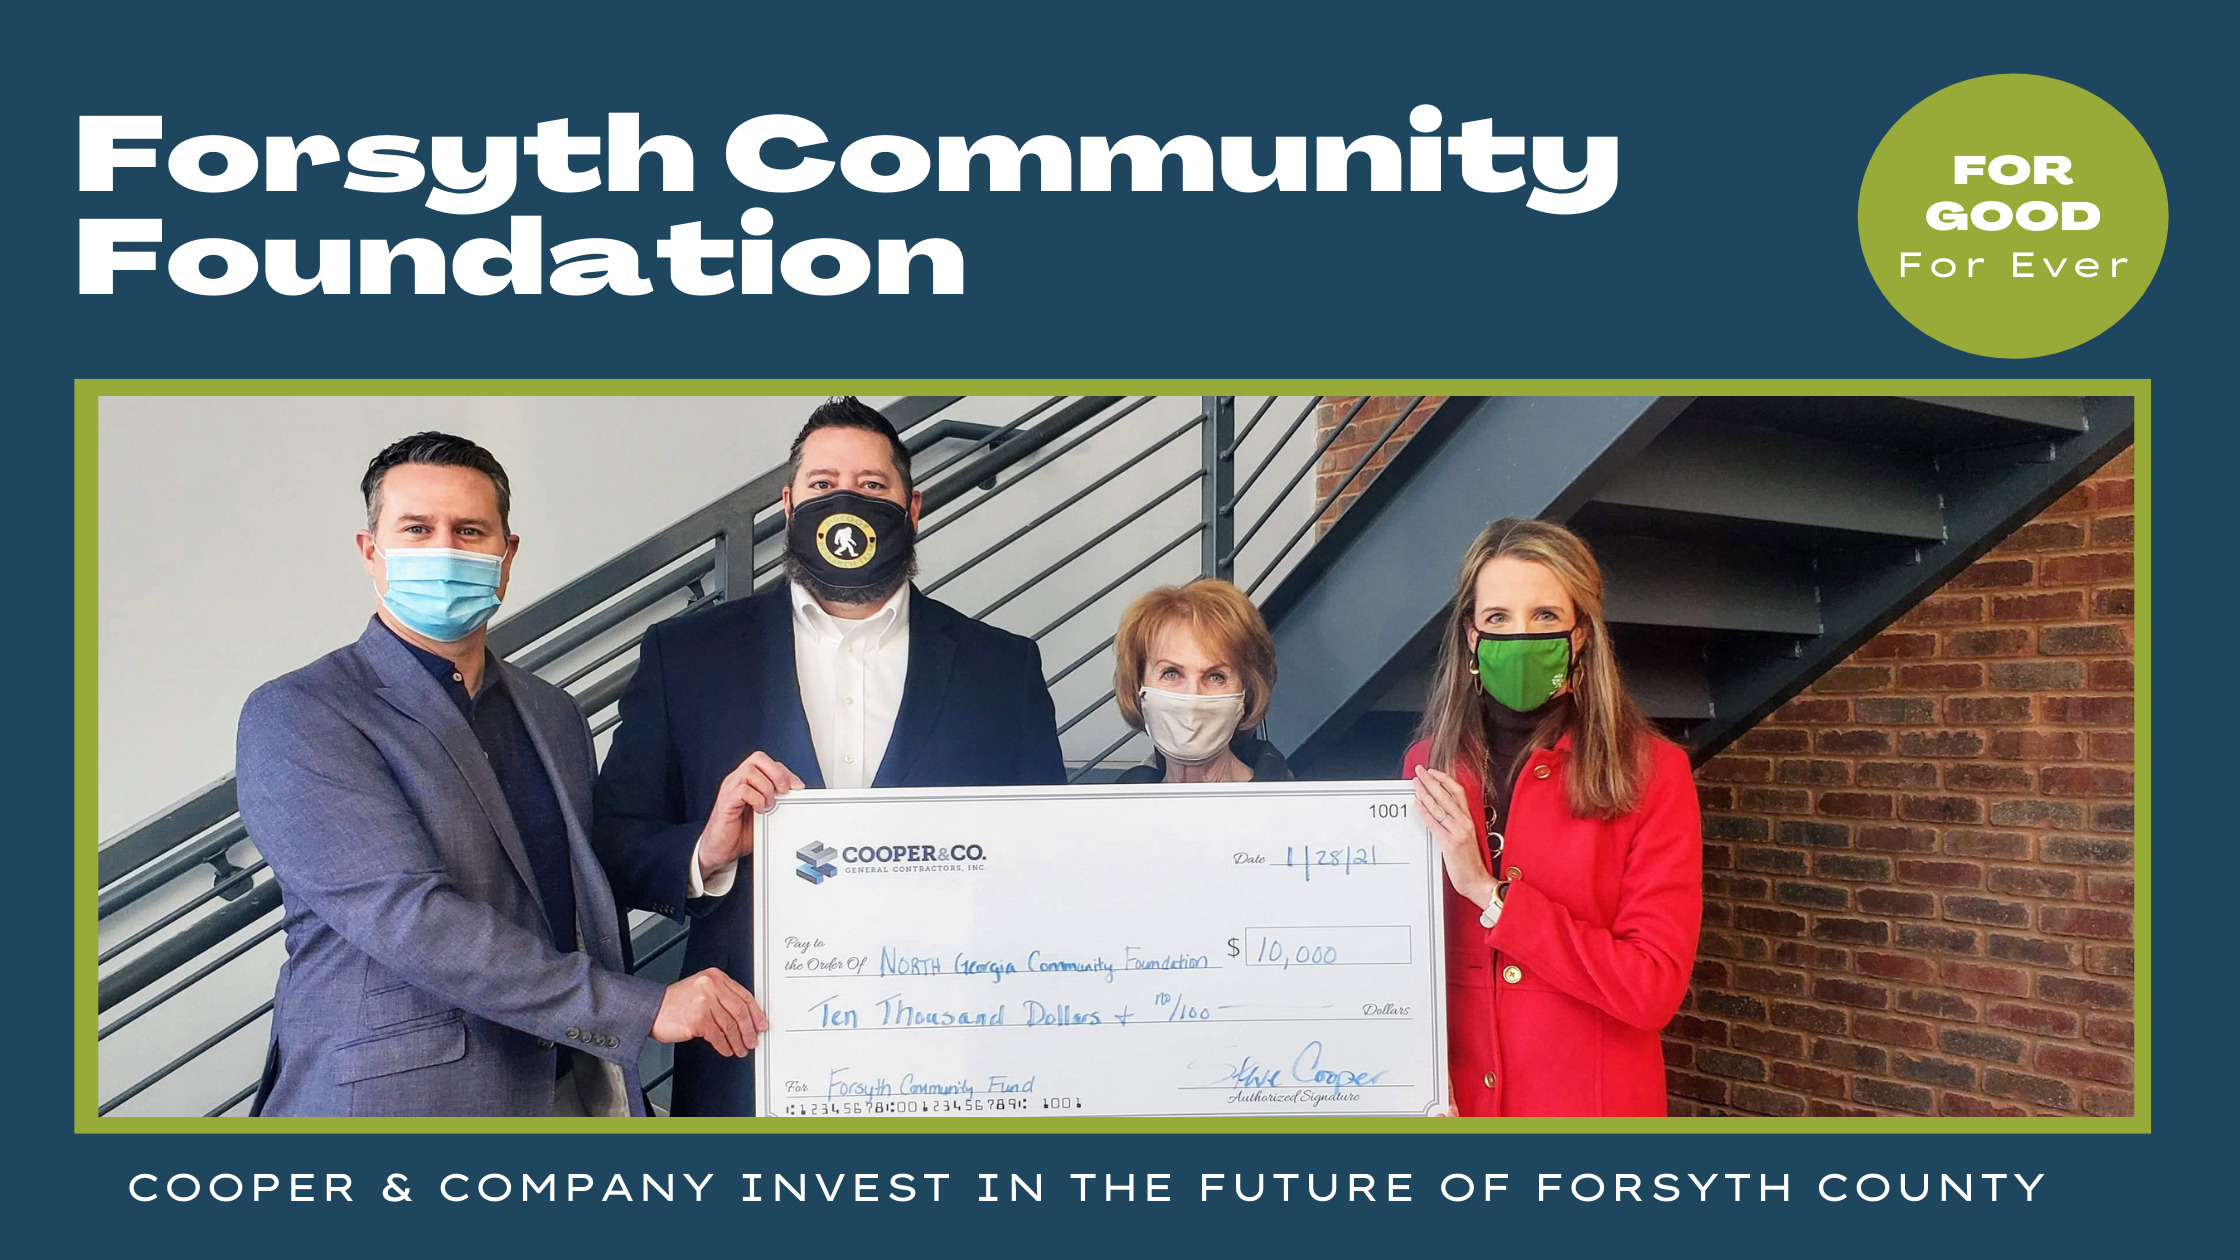 Cooper & Company Invest in the Future of Forsyth County | Cooper & Company General Contractors